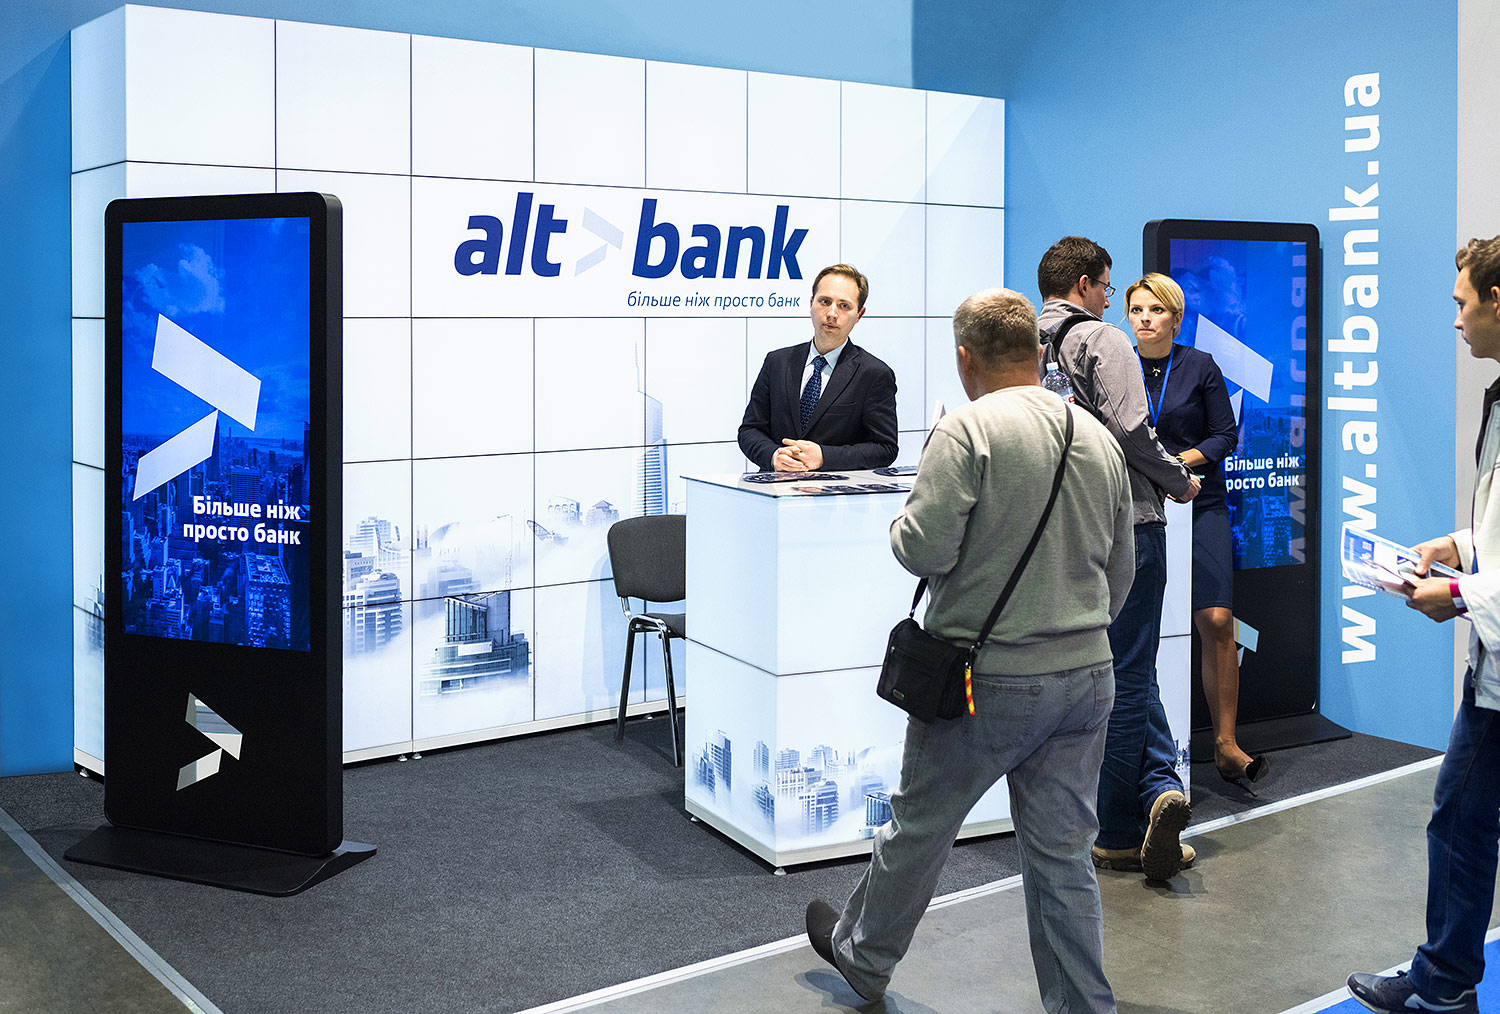 Altbank bank modular exhibition stand. Video stands with advertising and a luminous wall. Acrylic lightboxes, a cube system.